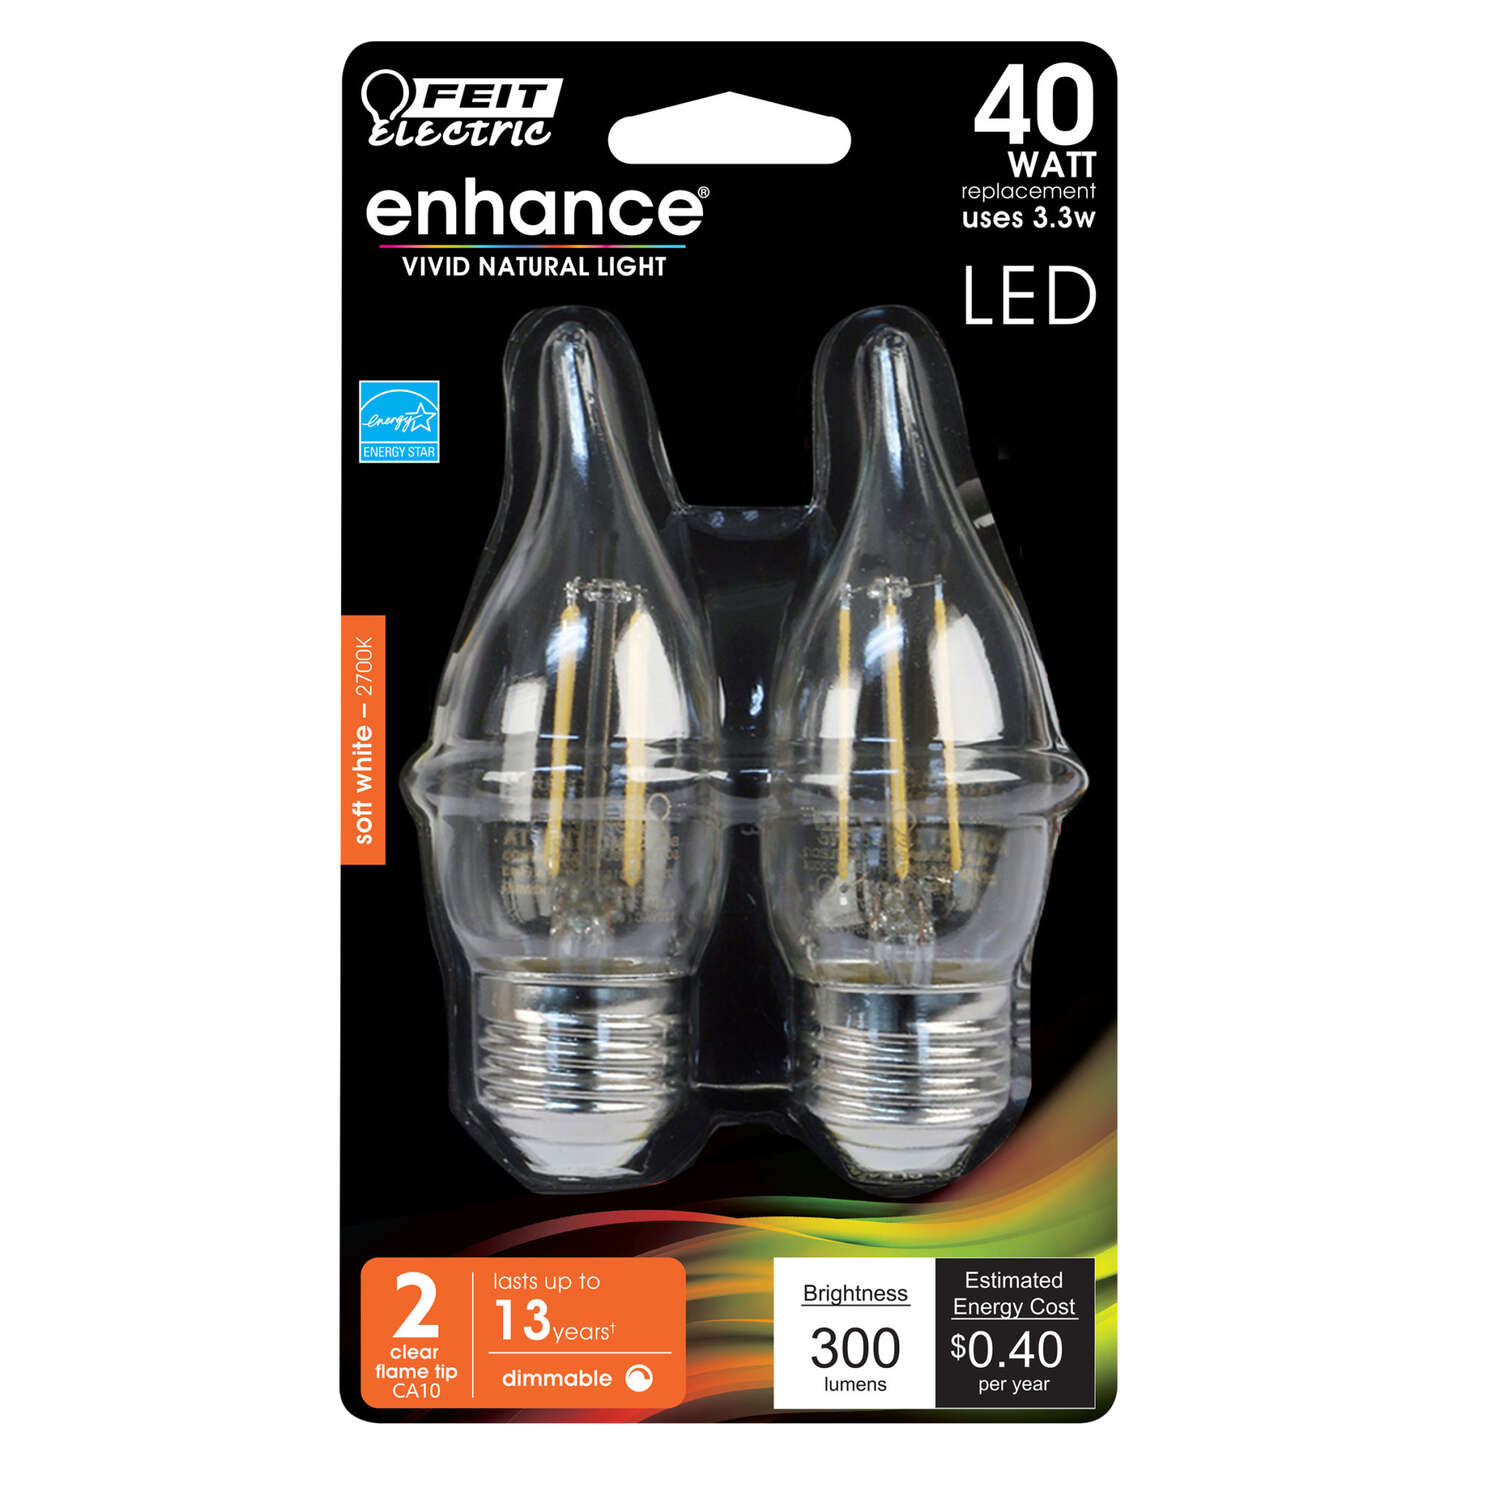 FEIT Electric  ENHANCE  CA10  E26 (Medium)  LED Bulb  Soft White  40 Watt Equivalence 2 pk